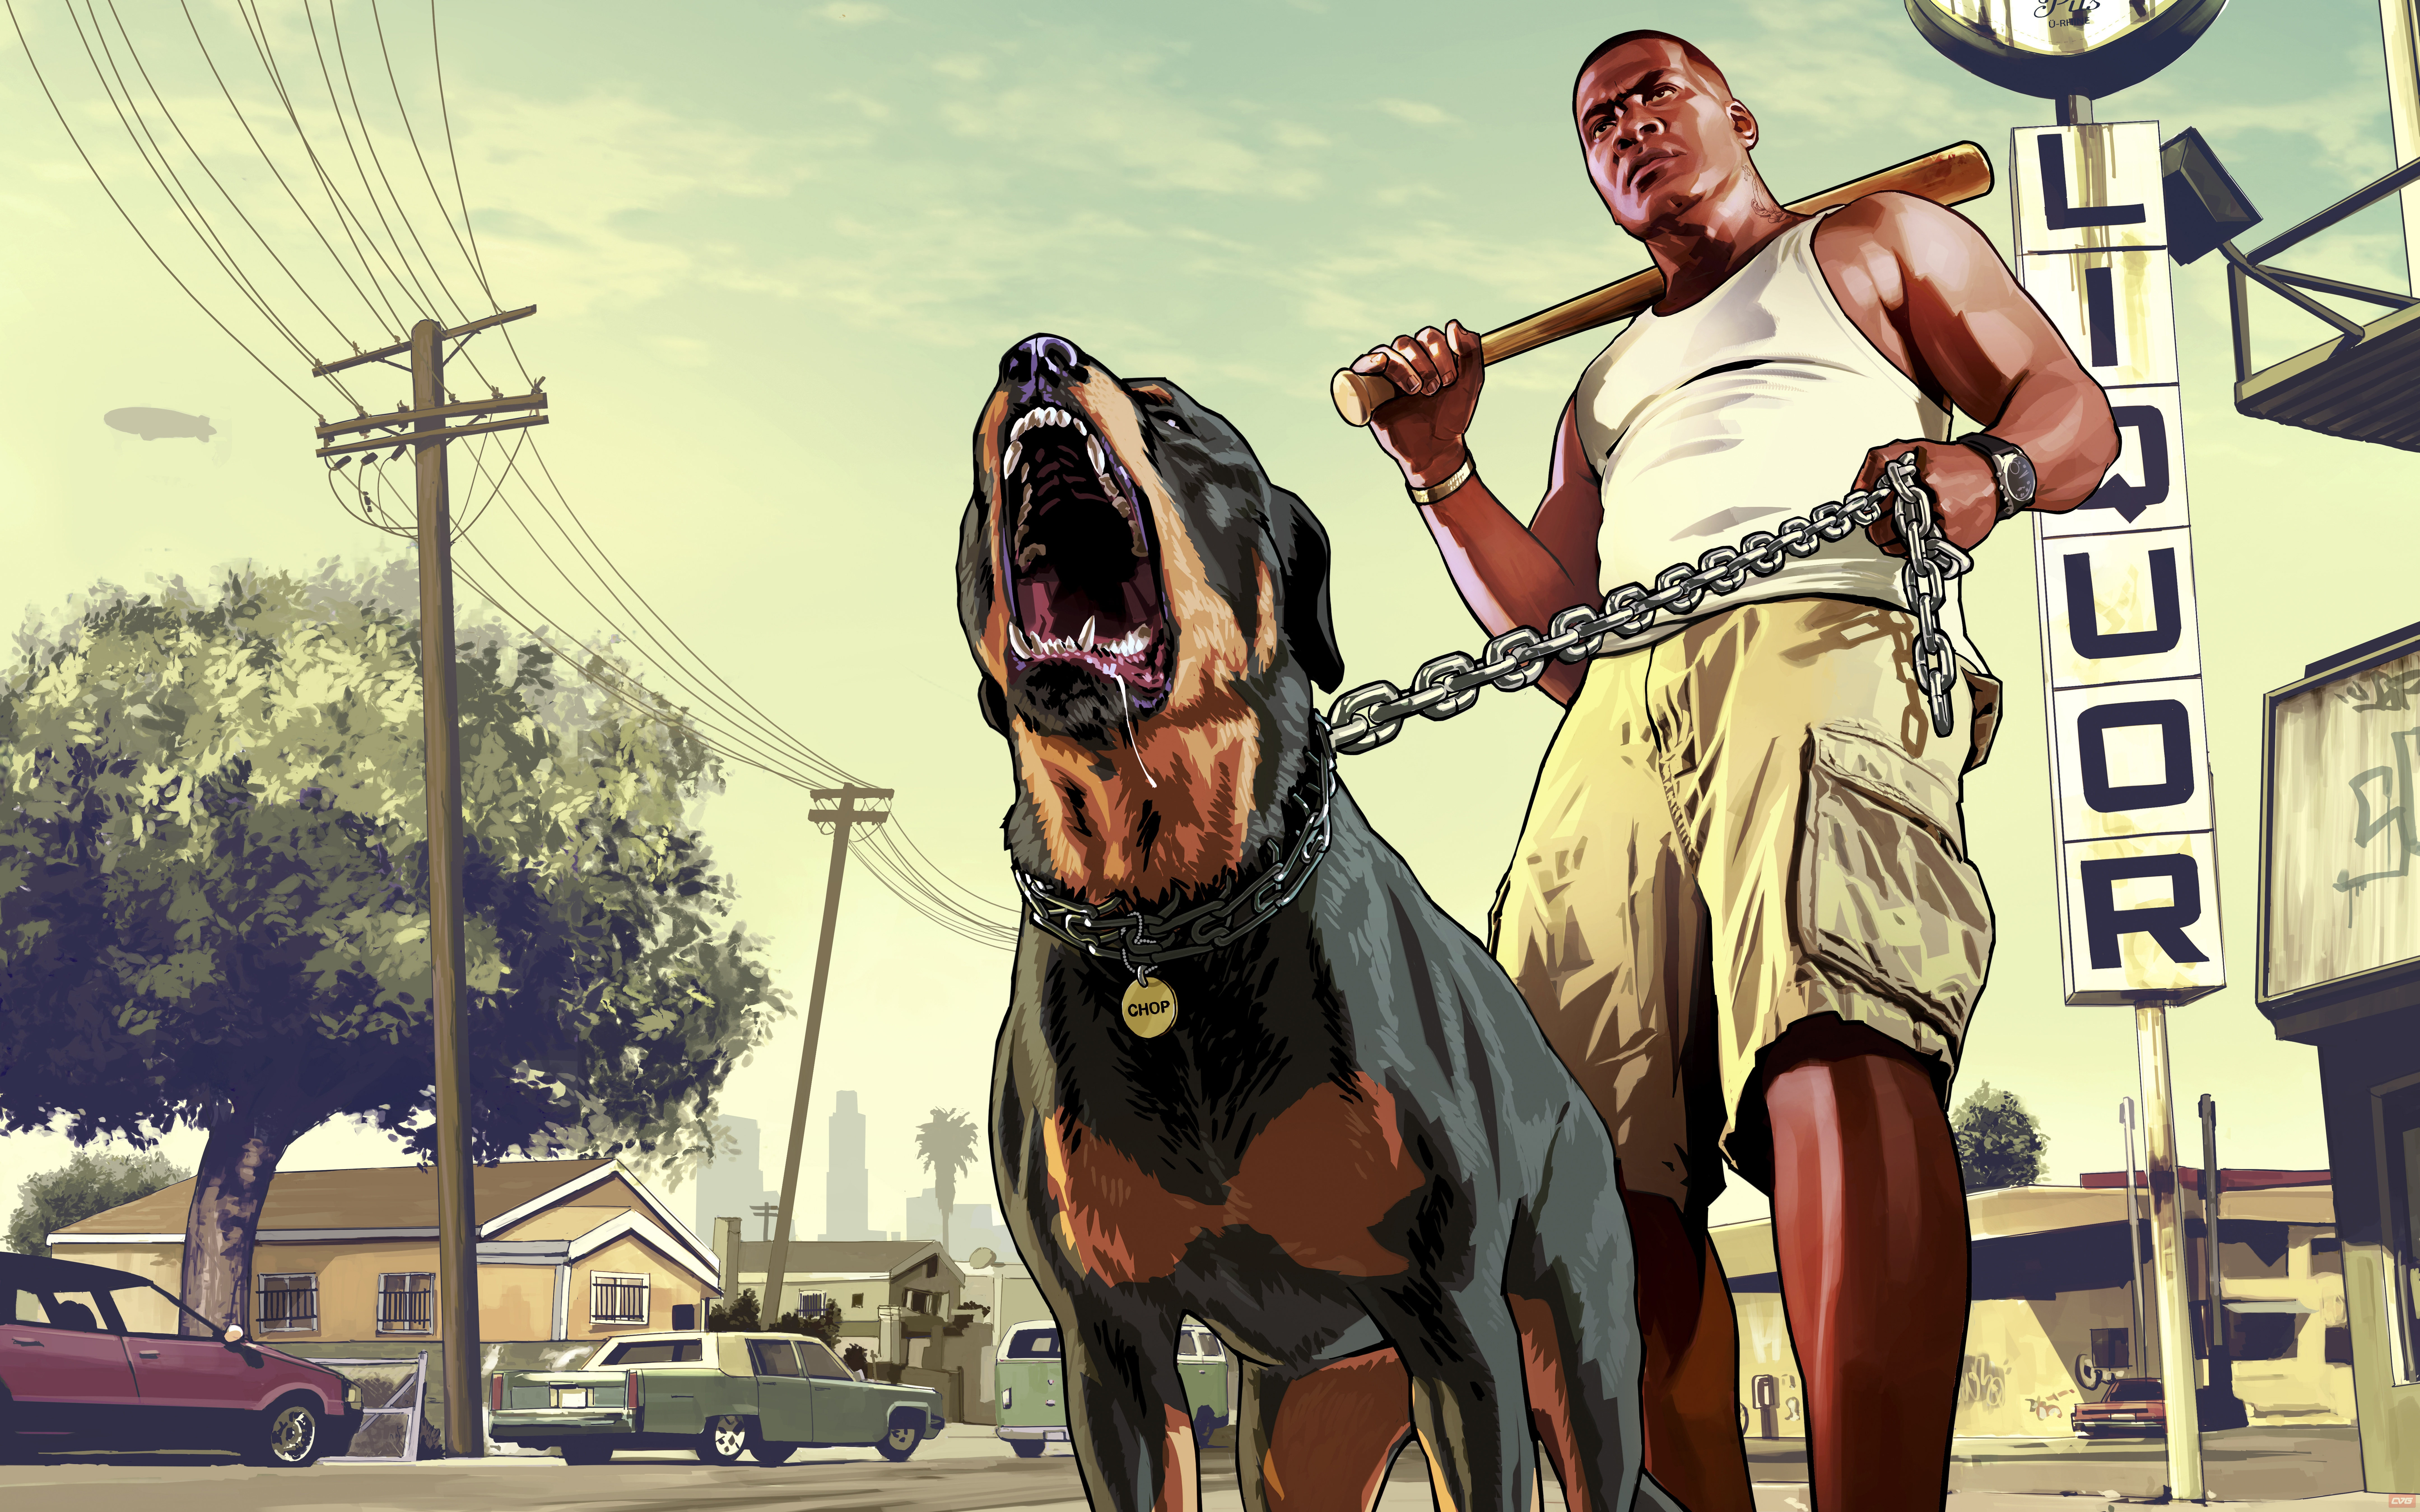 Gta 5 Franklin With Chop Rottweiler 8k Hd Games 4k Wallpapers